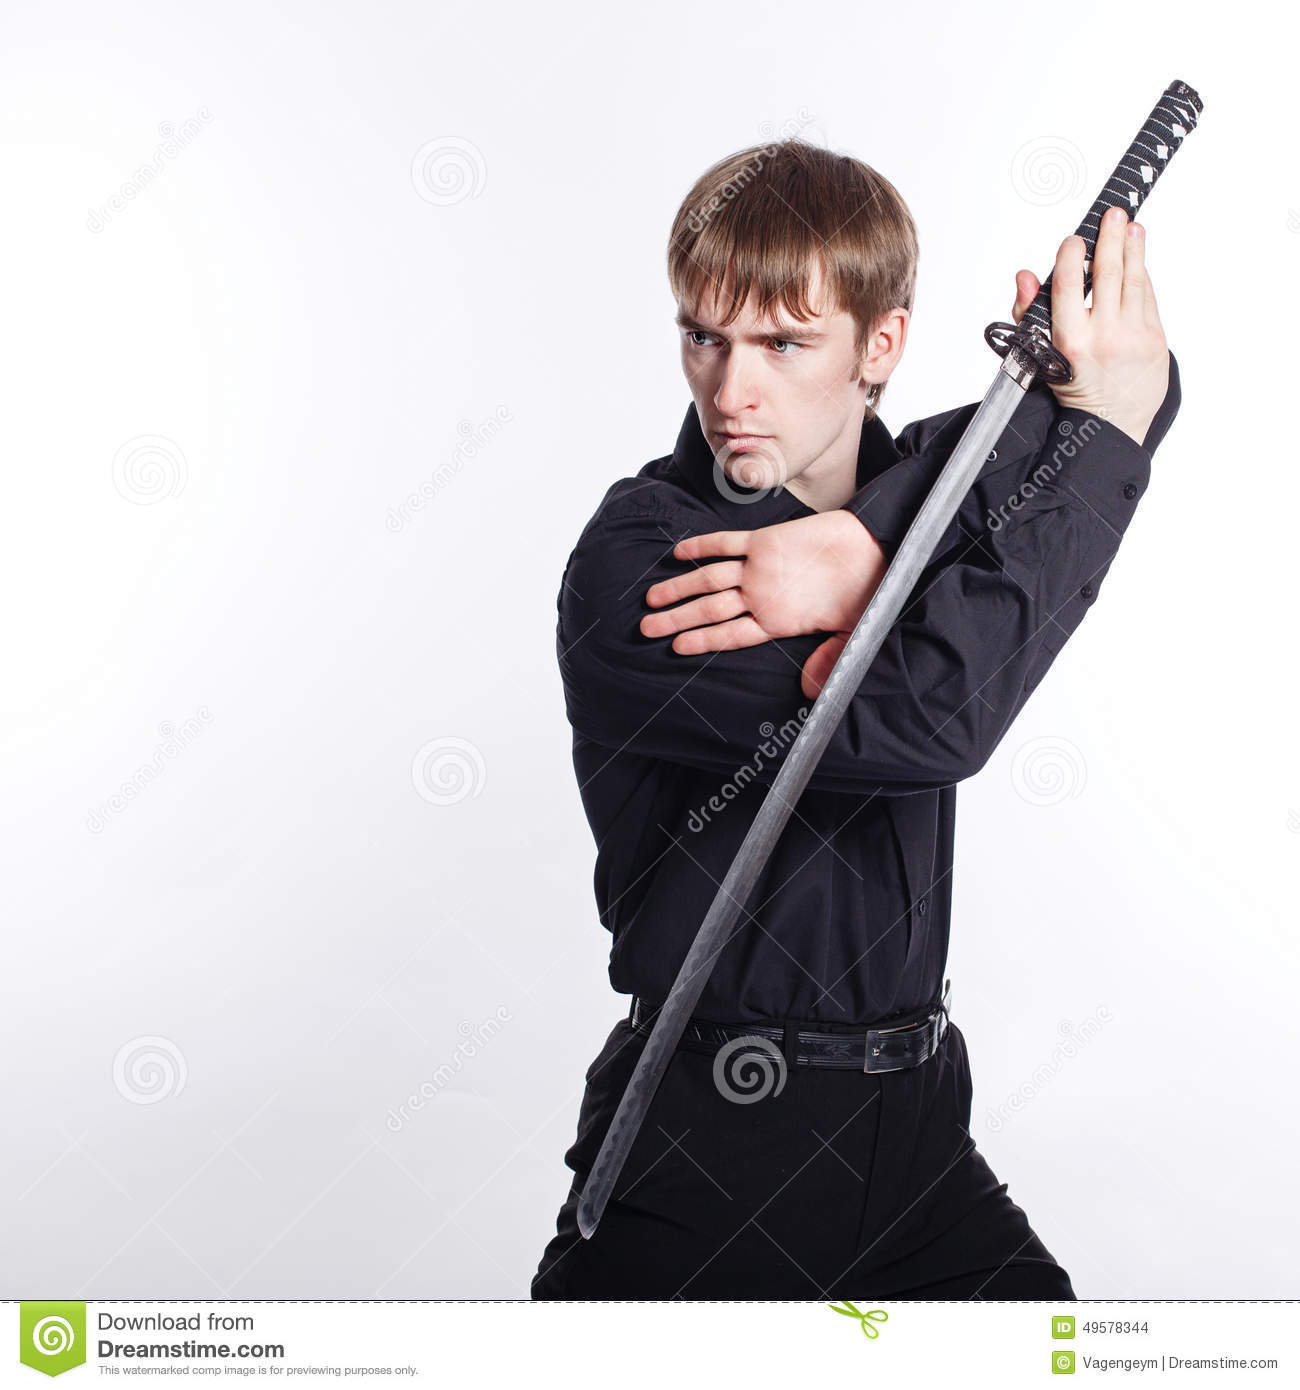 Technology Management Image: Man With Katana In Hand Stock Photo. Image Of Leadership